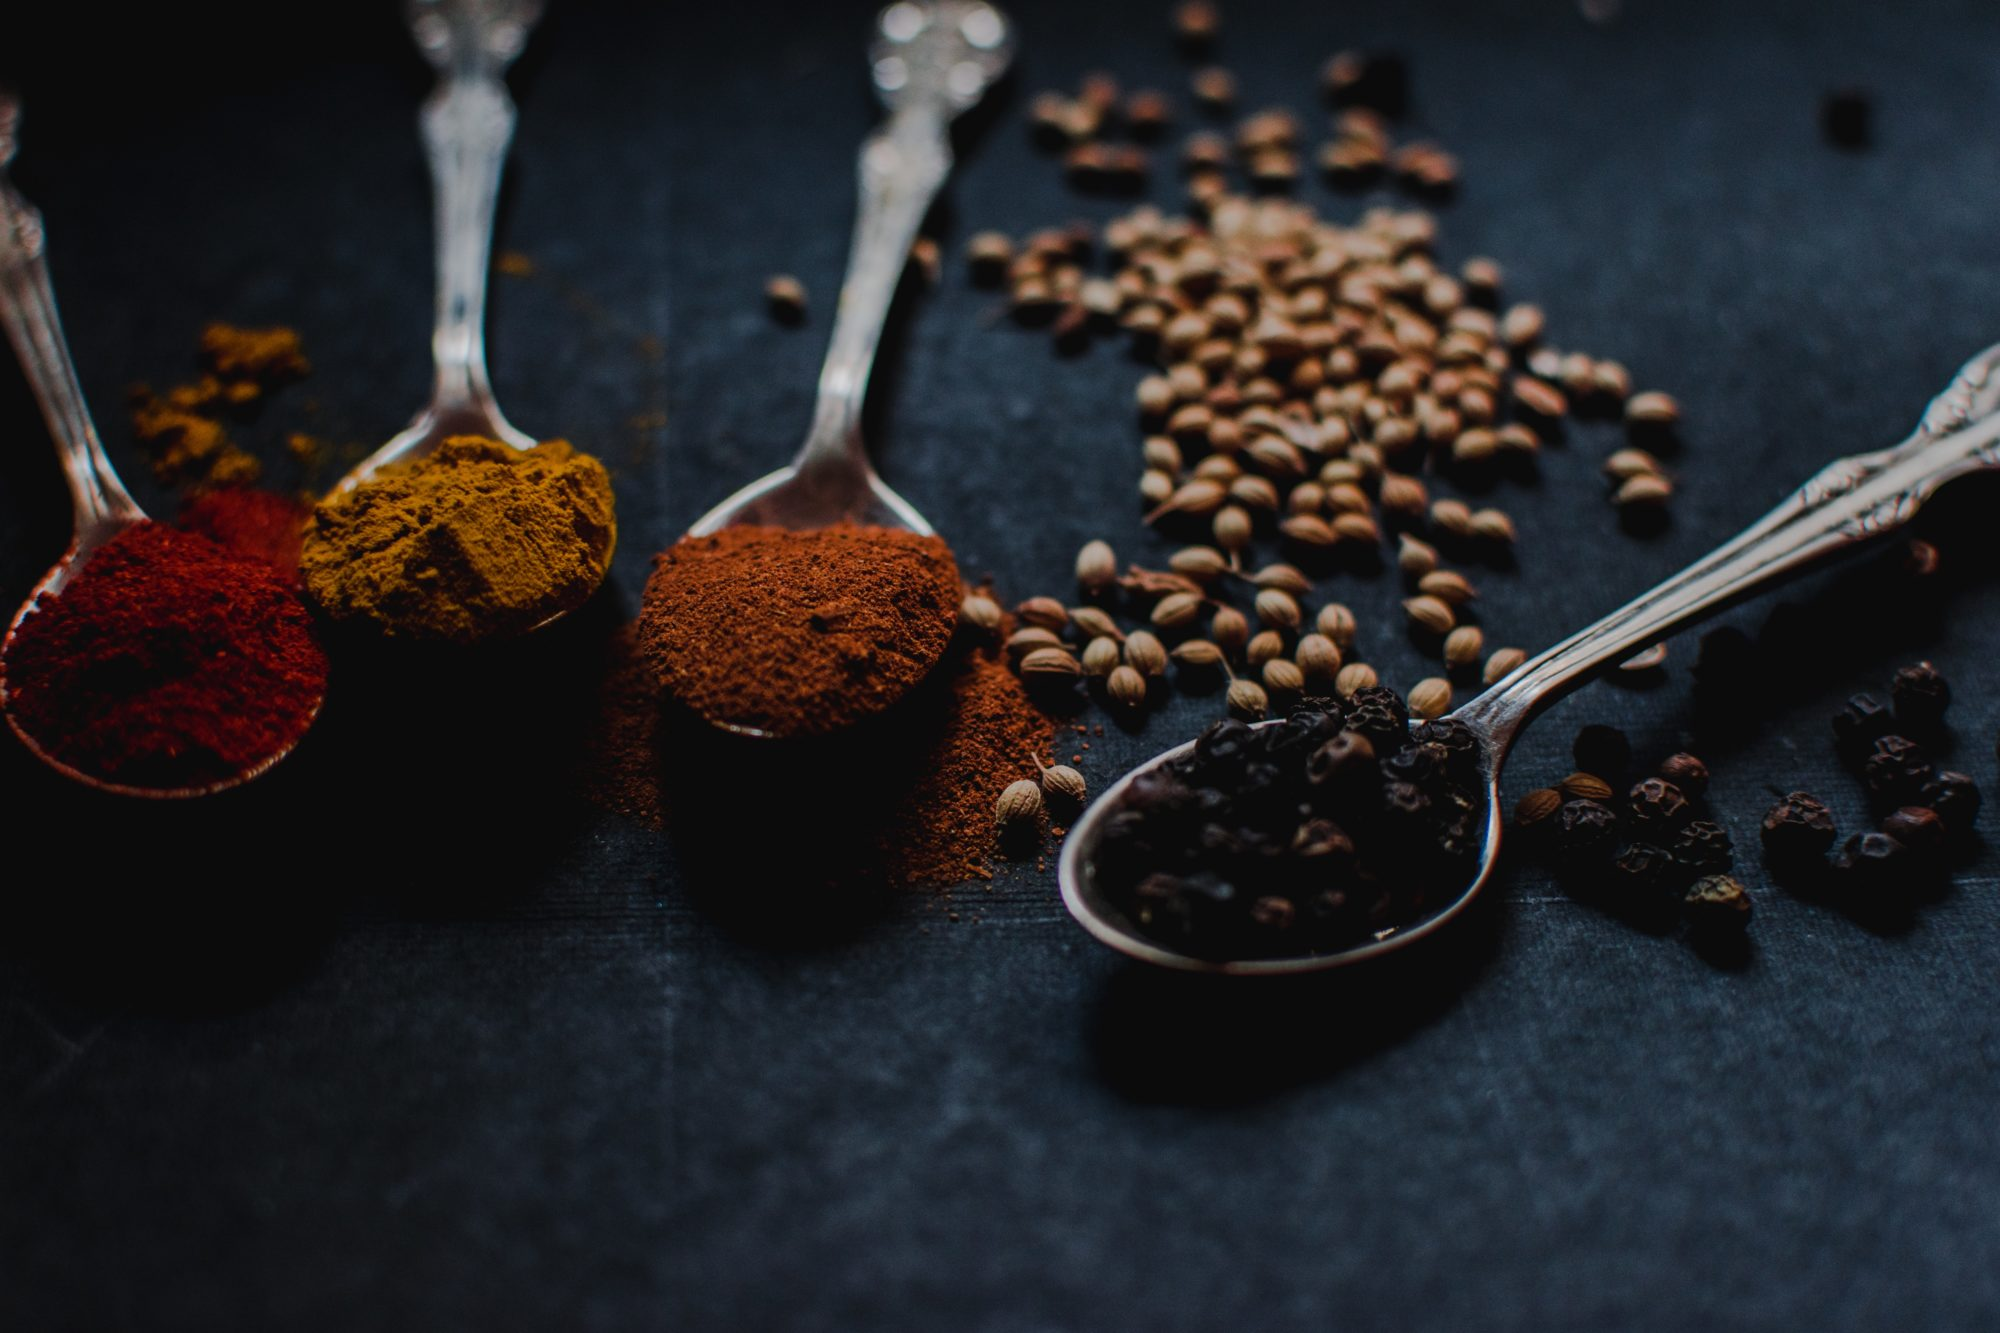 Spices in stailess steel spoons